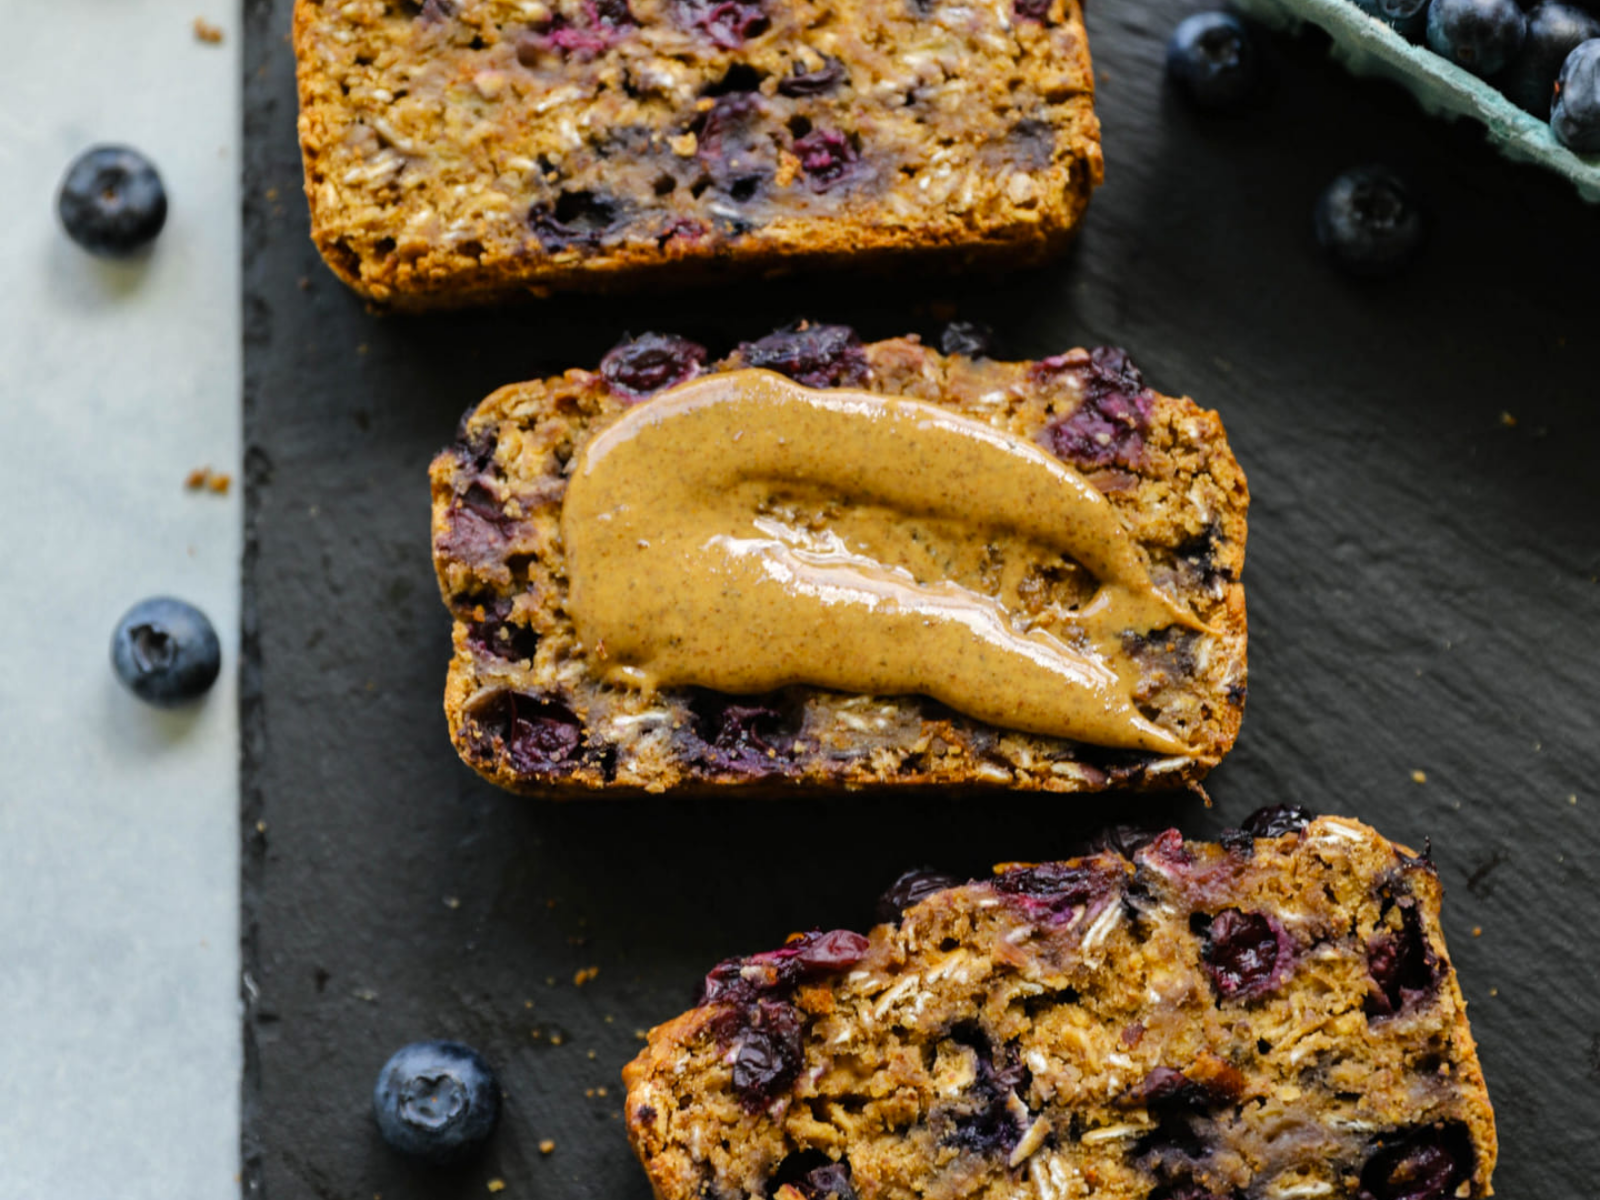 Gluten-Free Blueberry Breakfast Bread